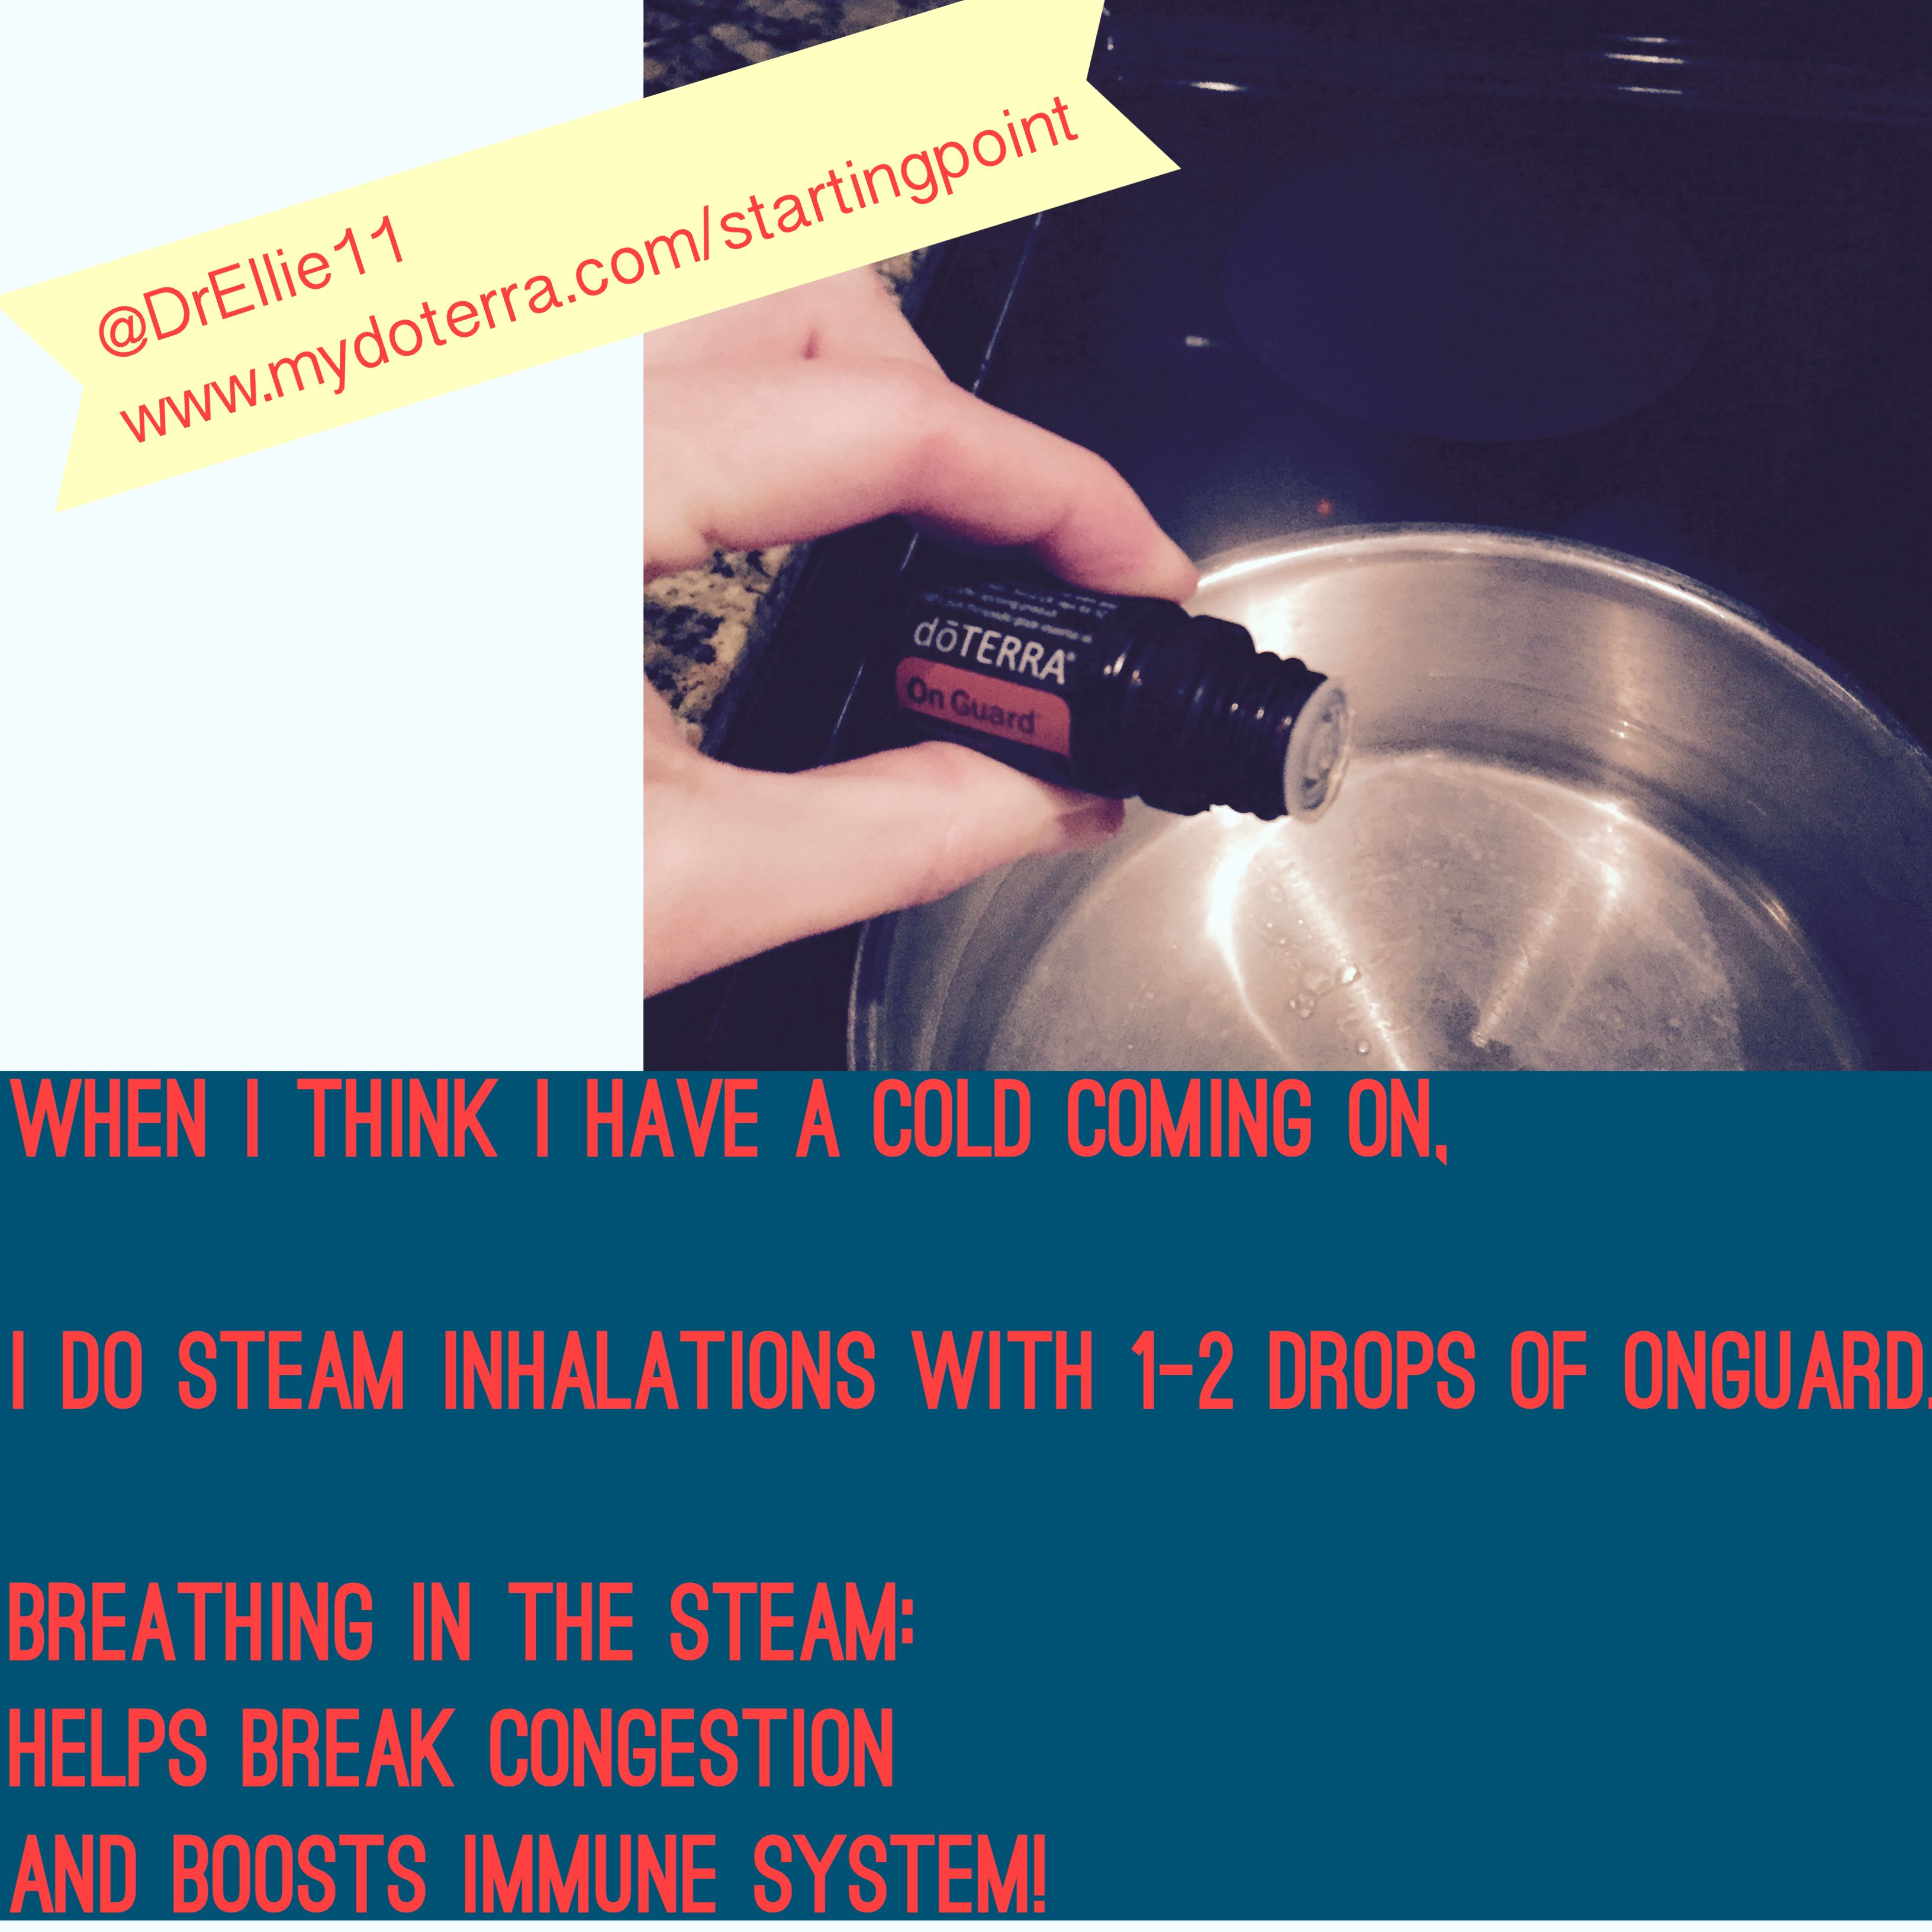 Steam inhalations are the best way to PREVENT colds